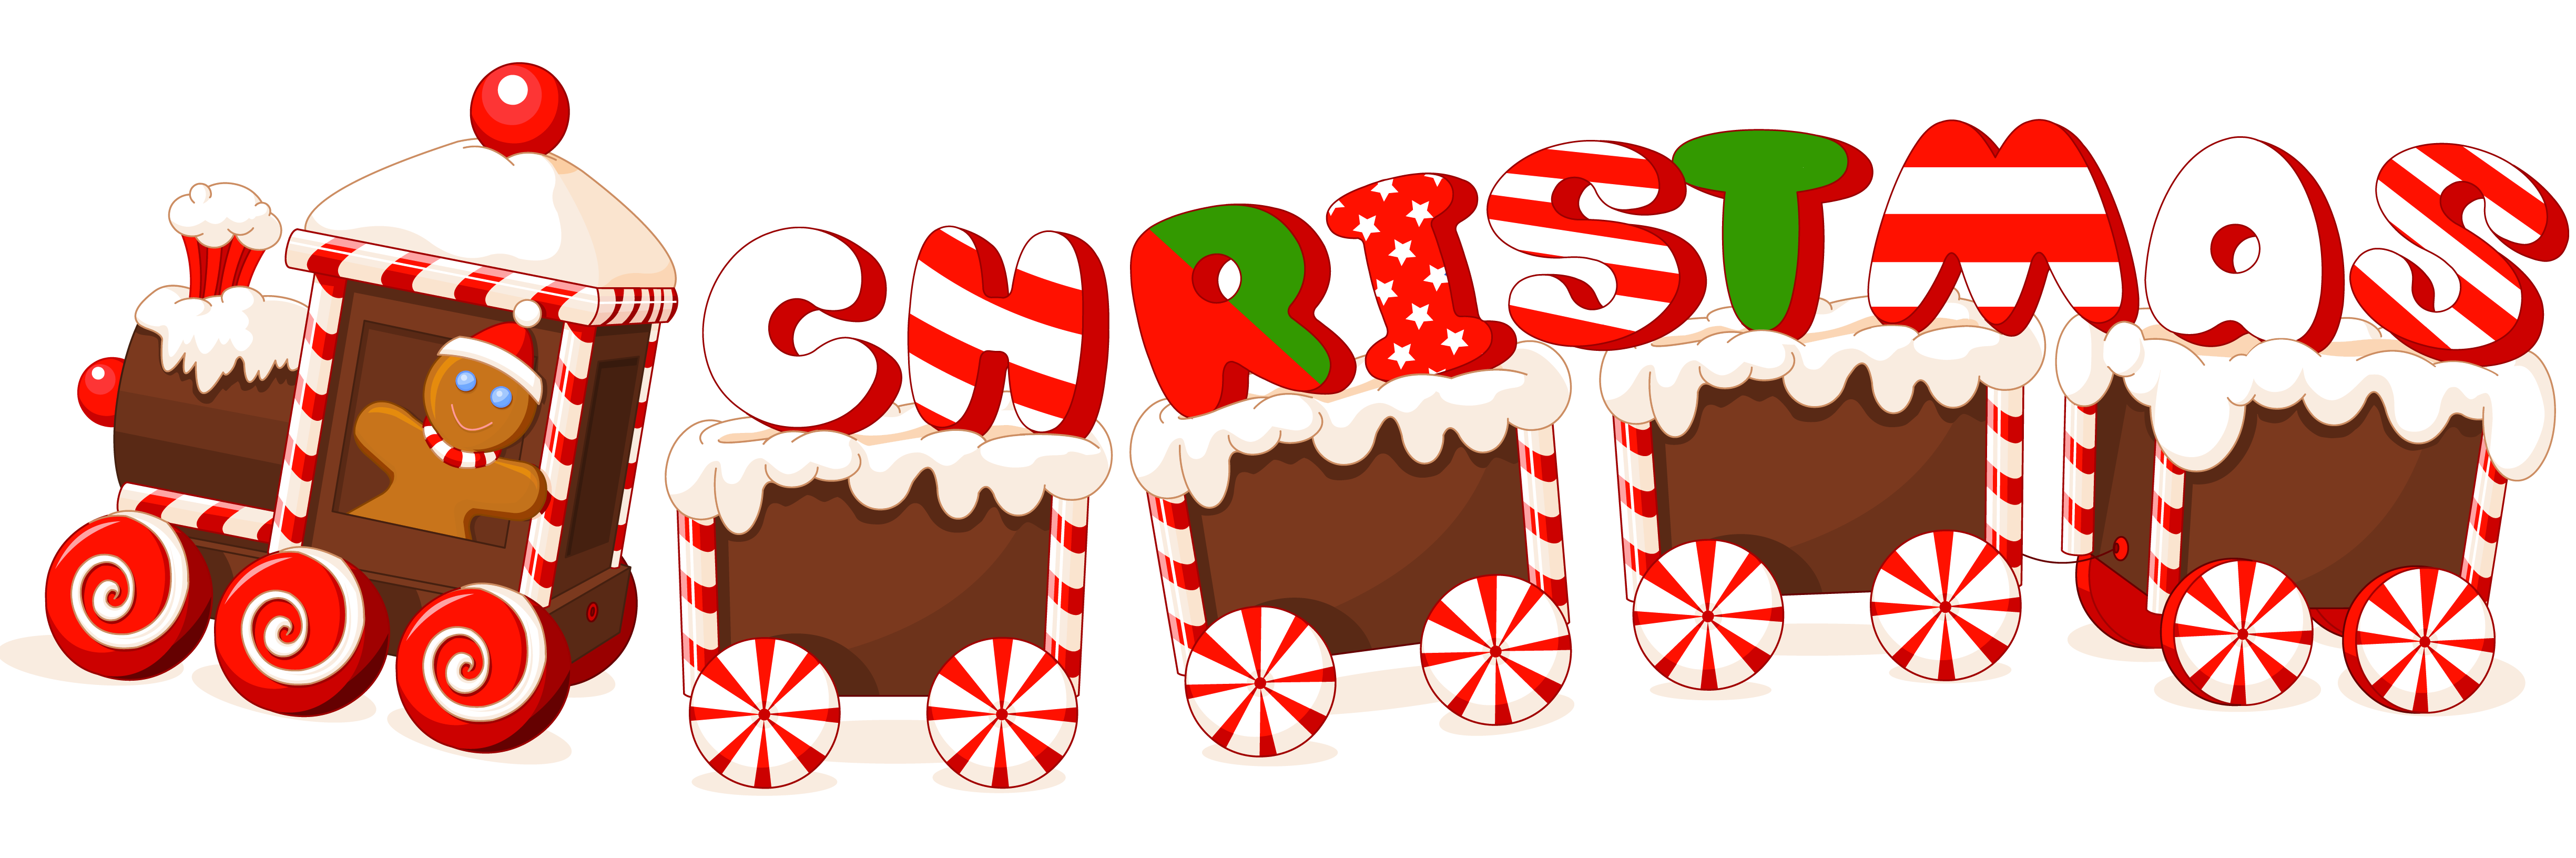 PNG Merry Christmas File image #27739